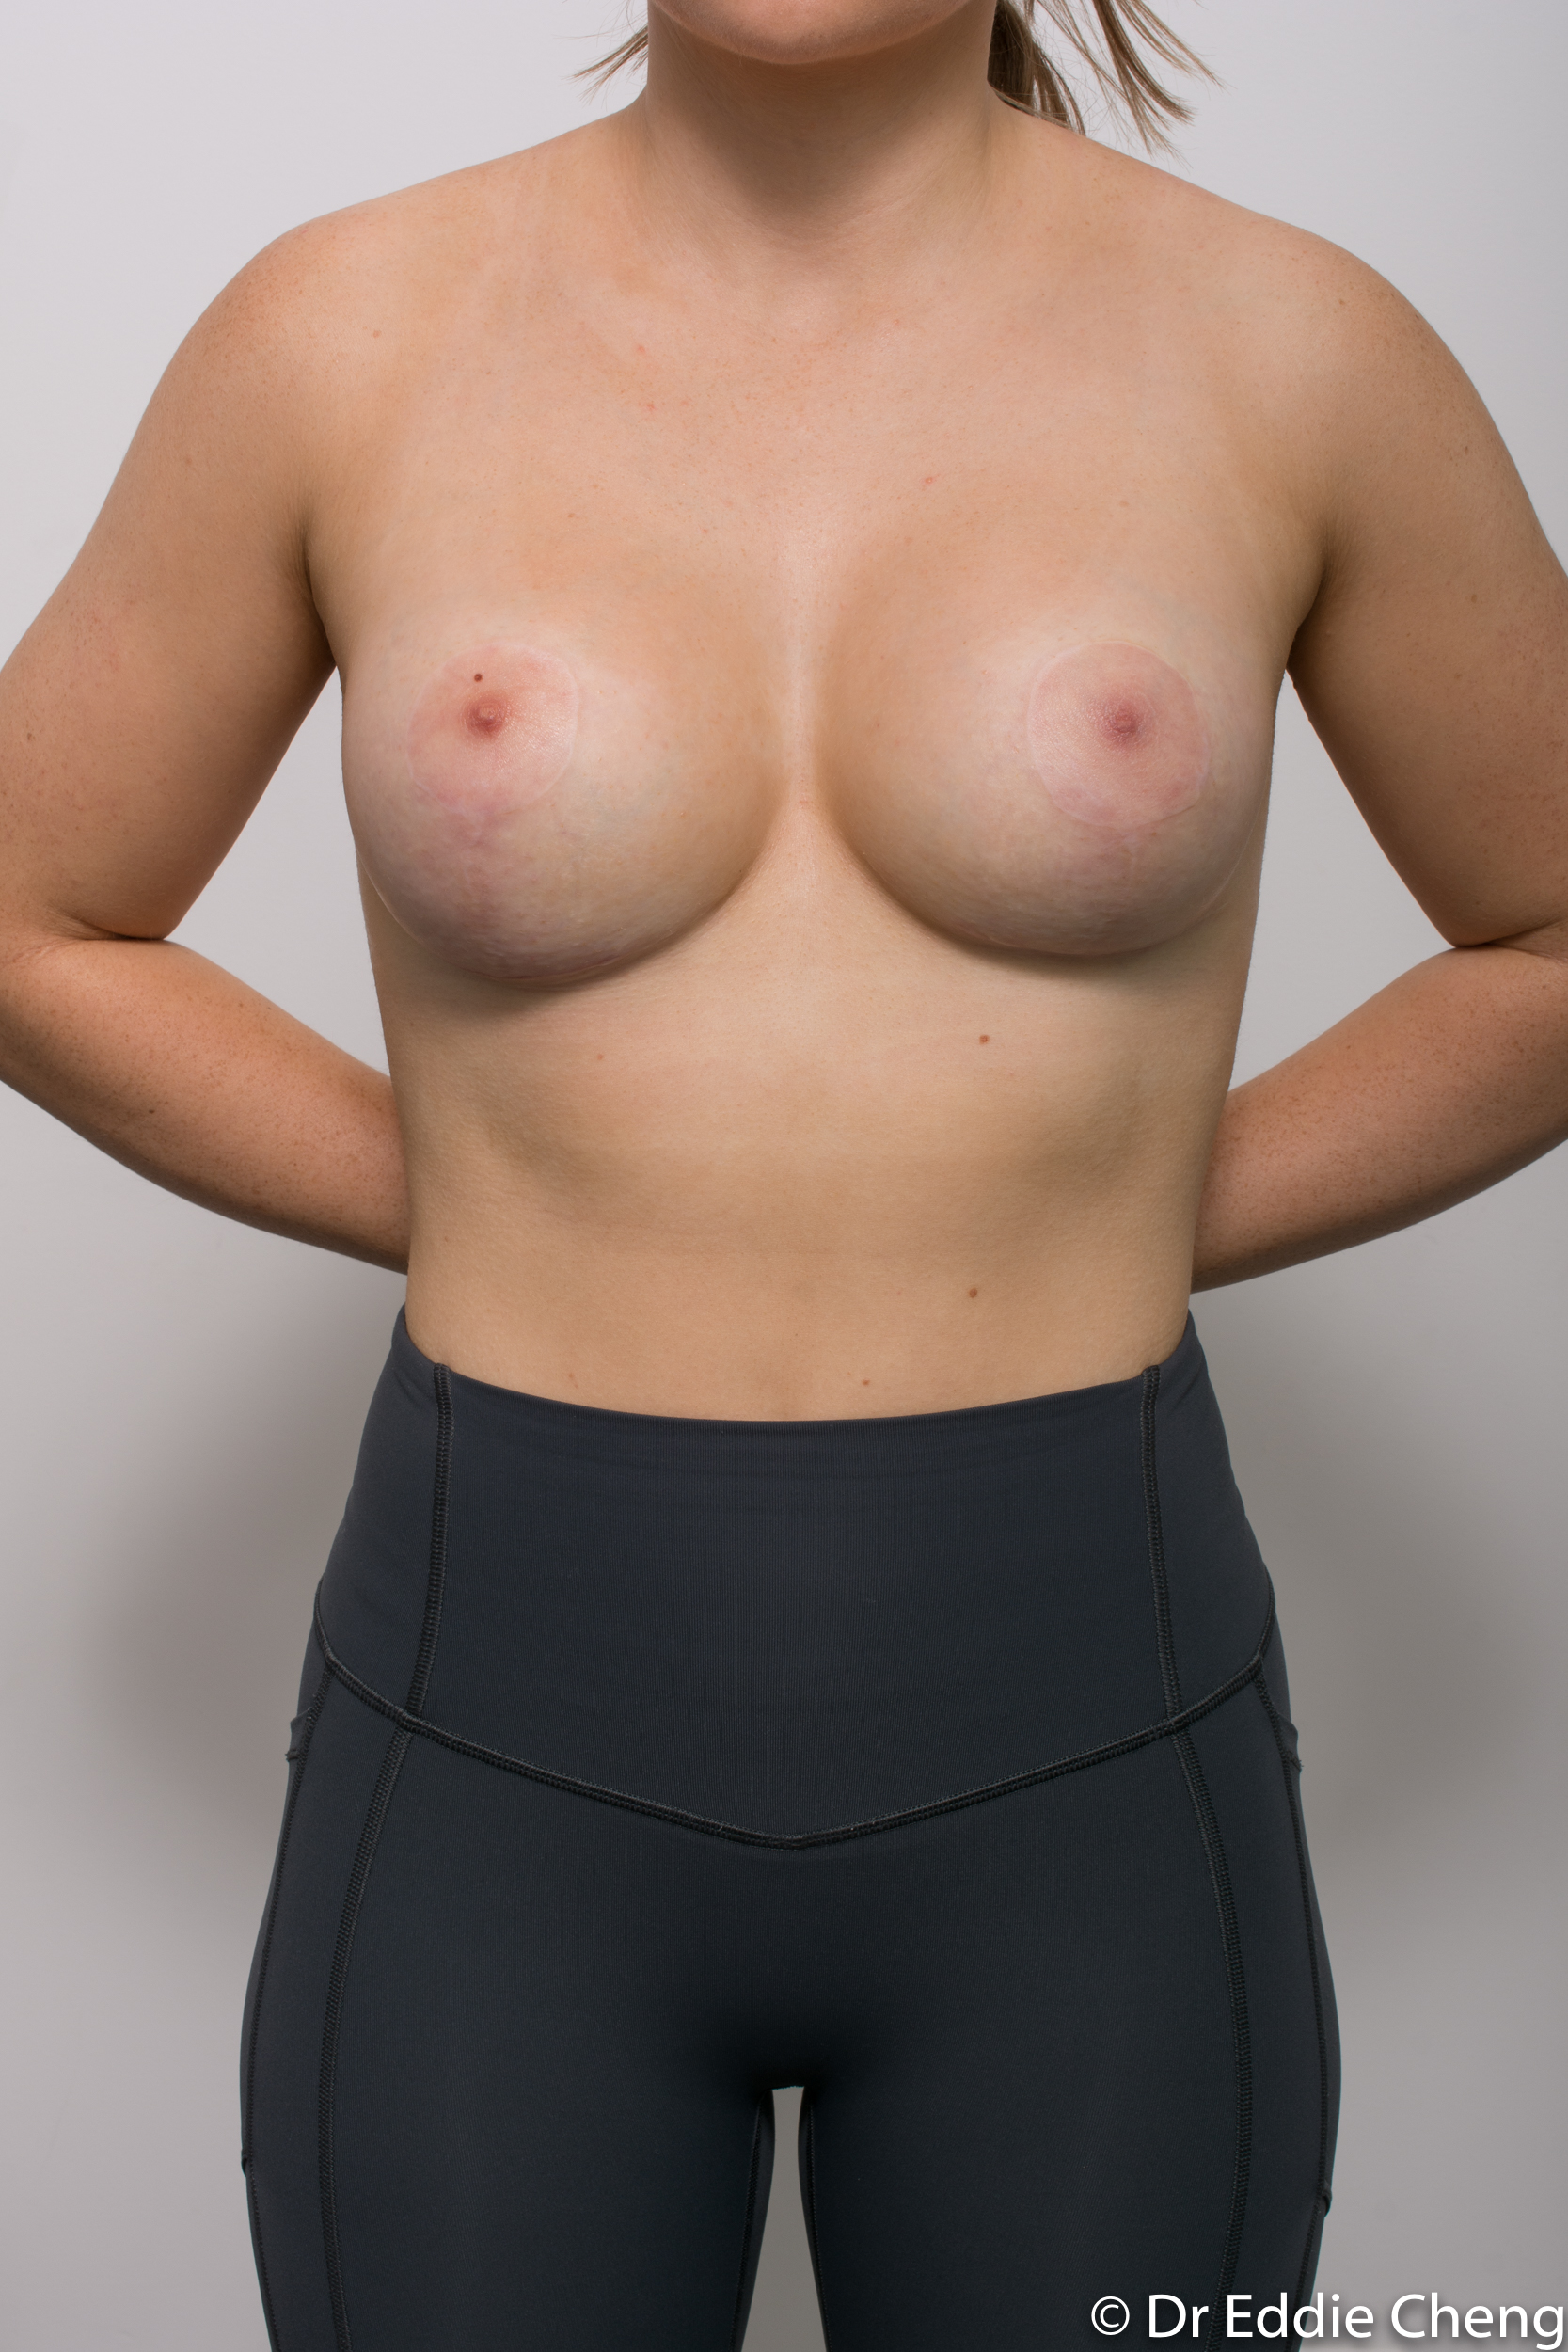 2 stage procedure tuberous breasts dr eddie cheng brisbane surgeon pre and post operative images -1-2